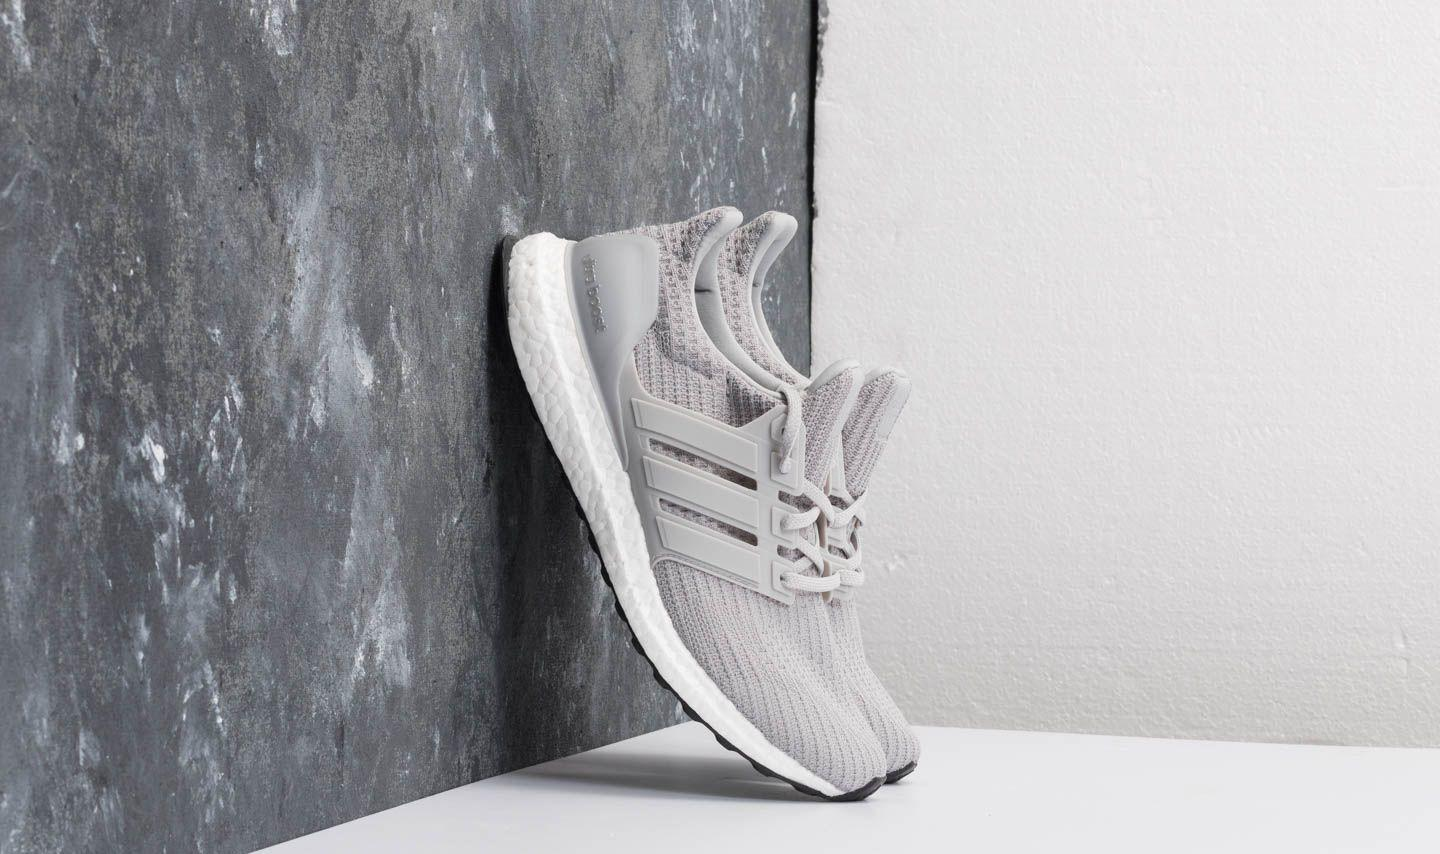 Lyst - adidas Originals Adidas Ultraboost Grey Two  Grey Two  Core ... 8d8a8fe92